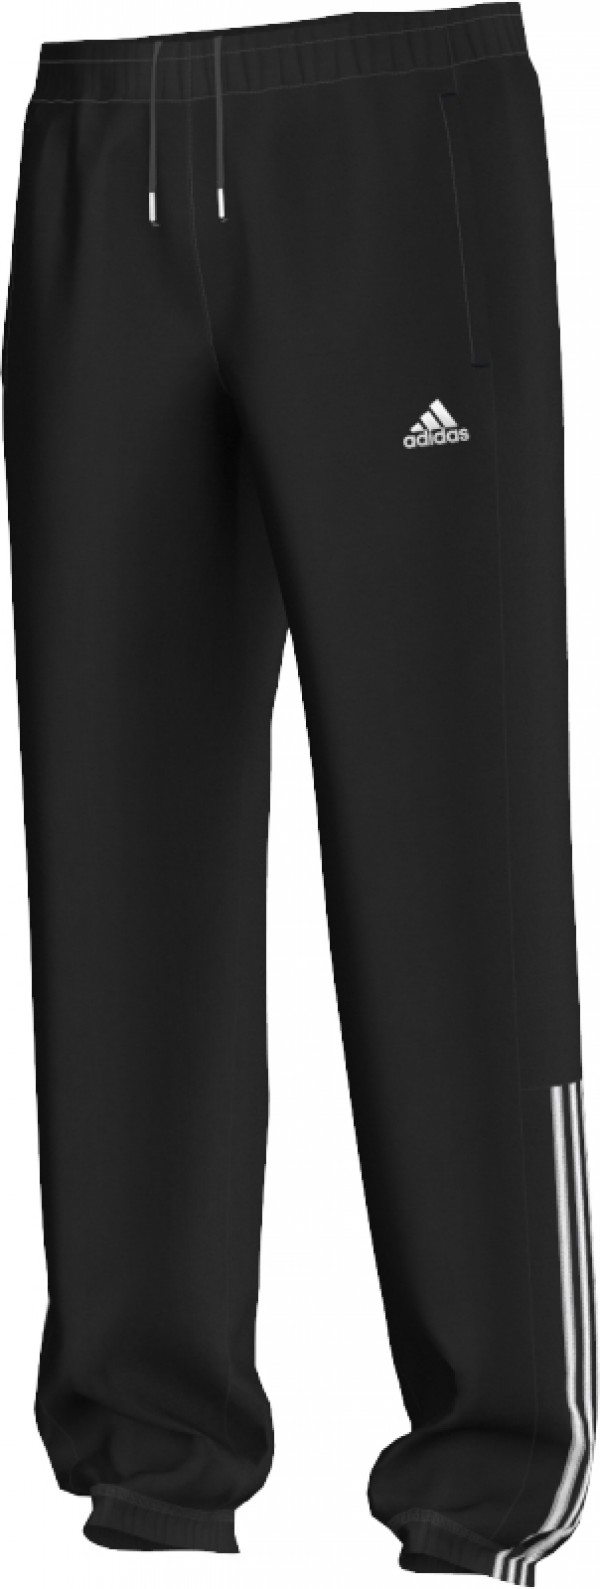 Adidas essentials mid pant cotton brushed